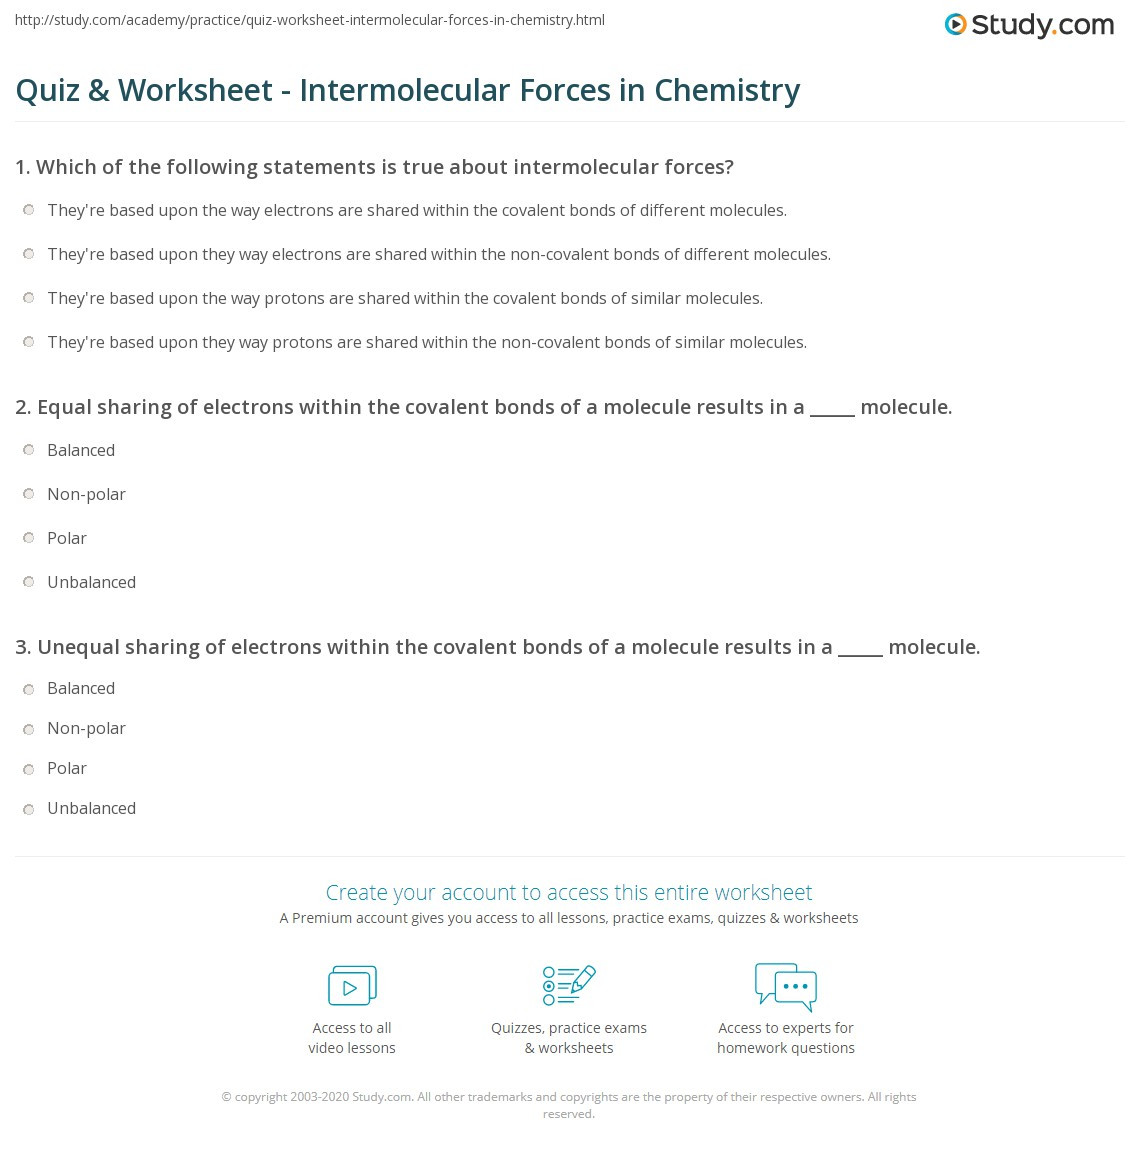 Intermolecular forces Worksheet High School Intermolecular forces Worksheet Answers